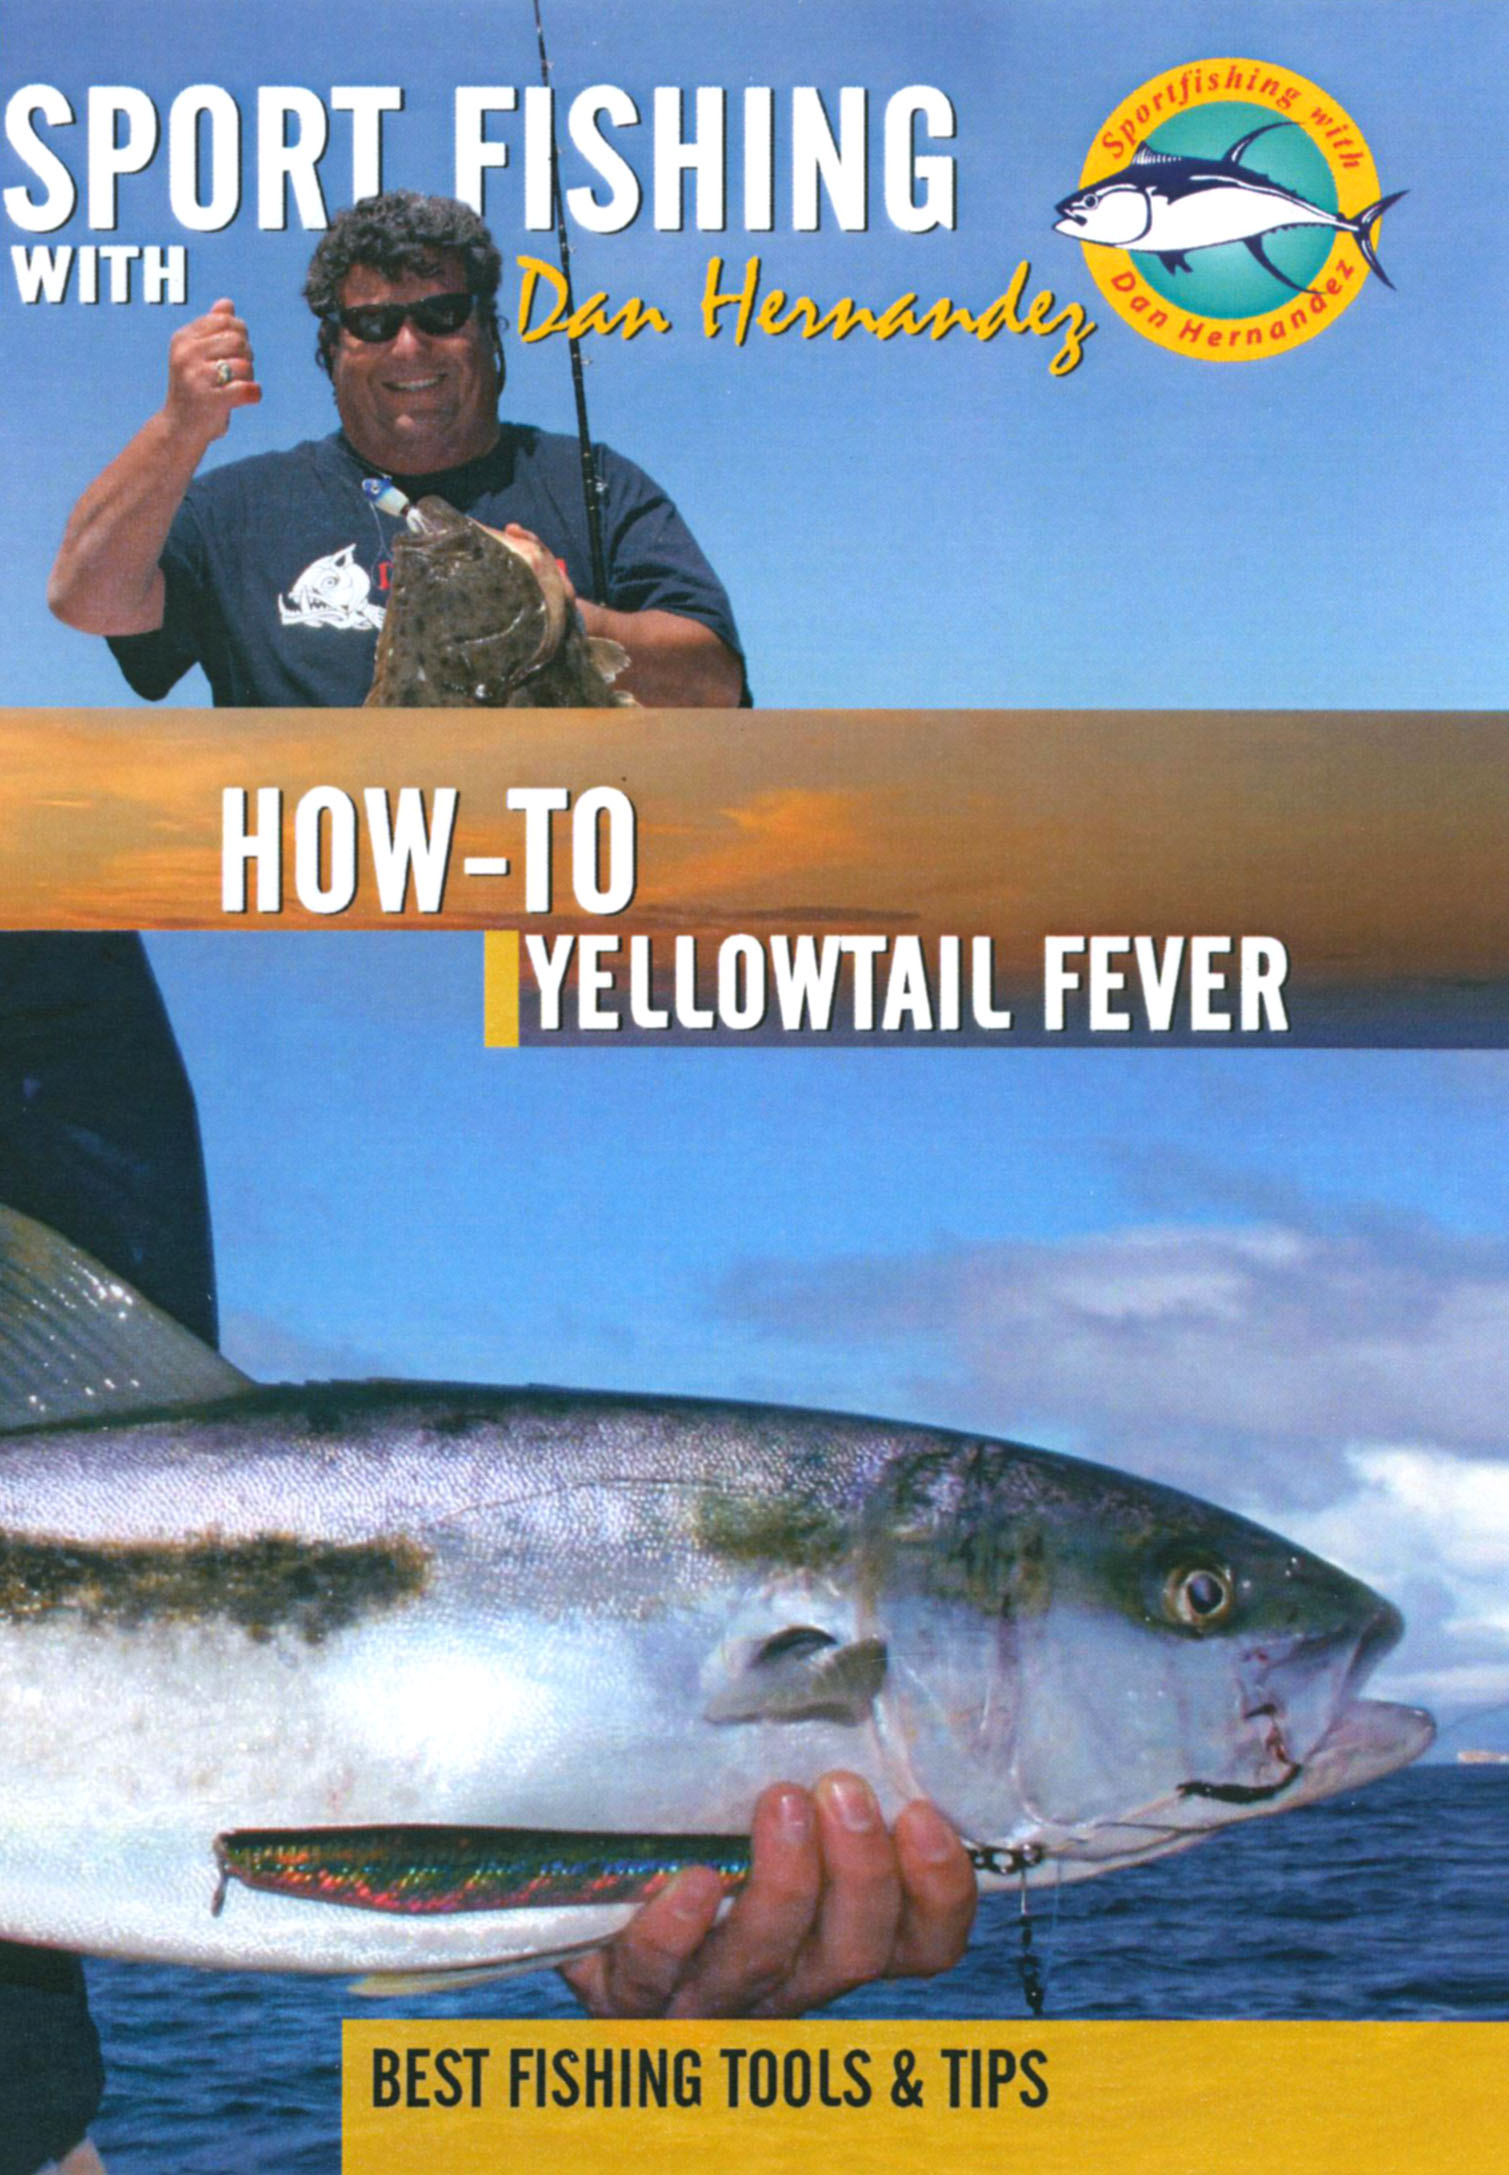 Sport Fishing With Dan Hernandez: How-To Yellowtail Fever